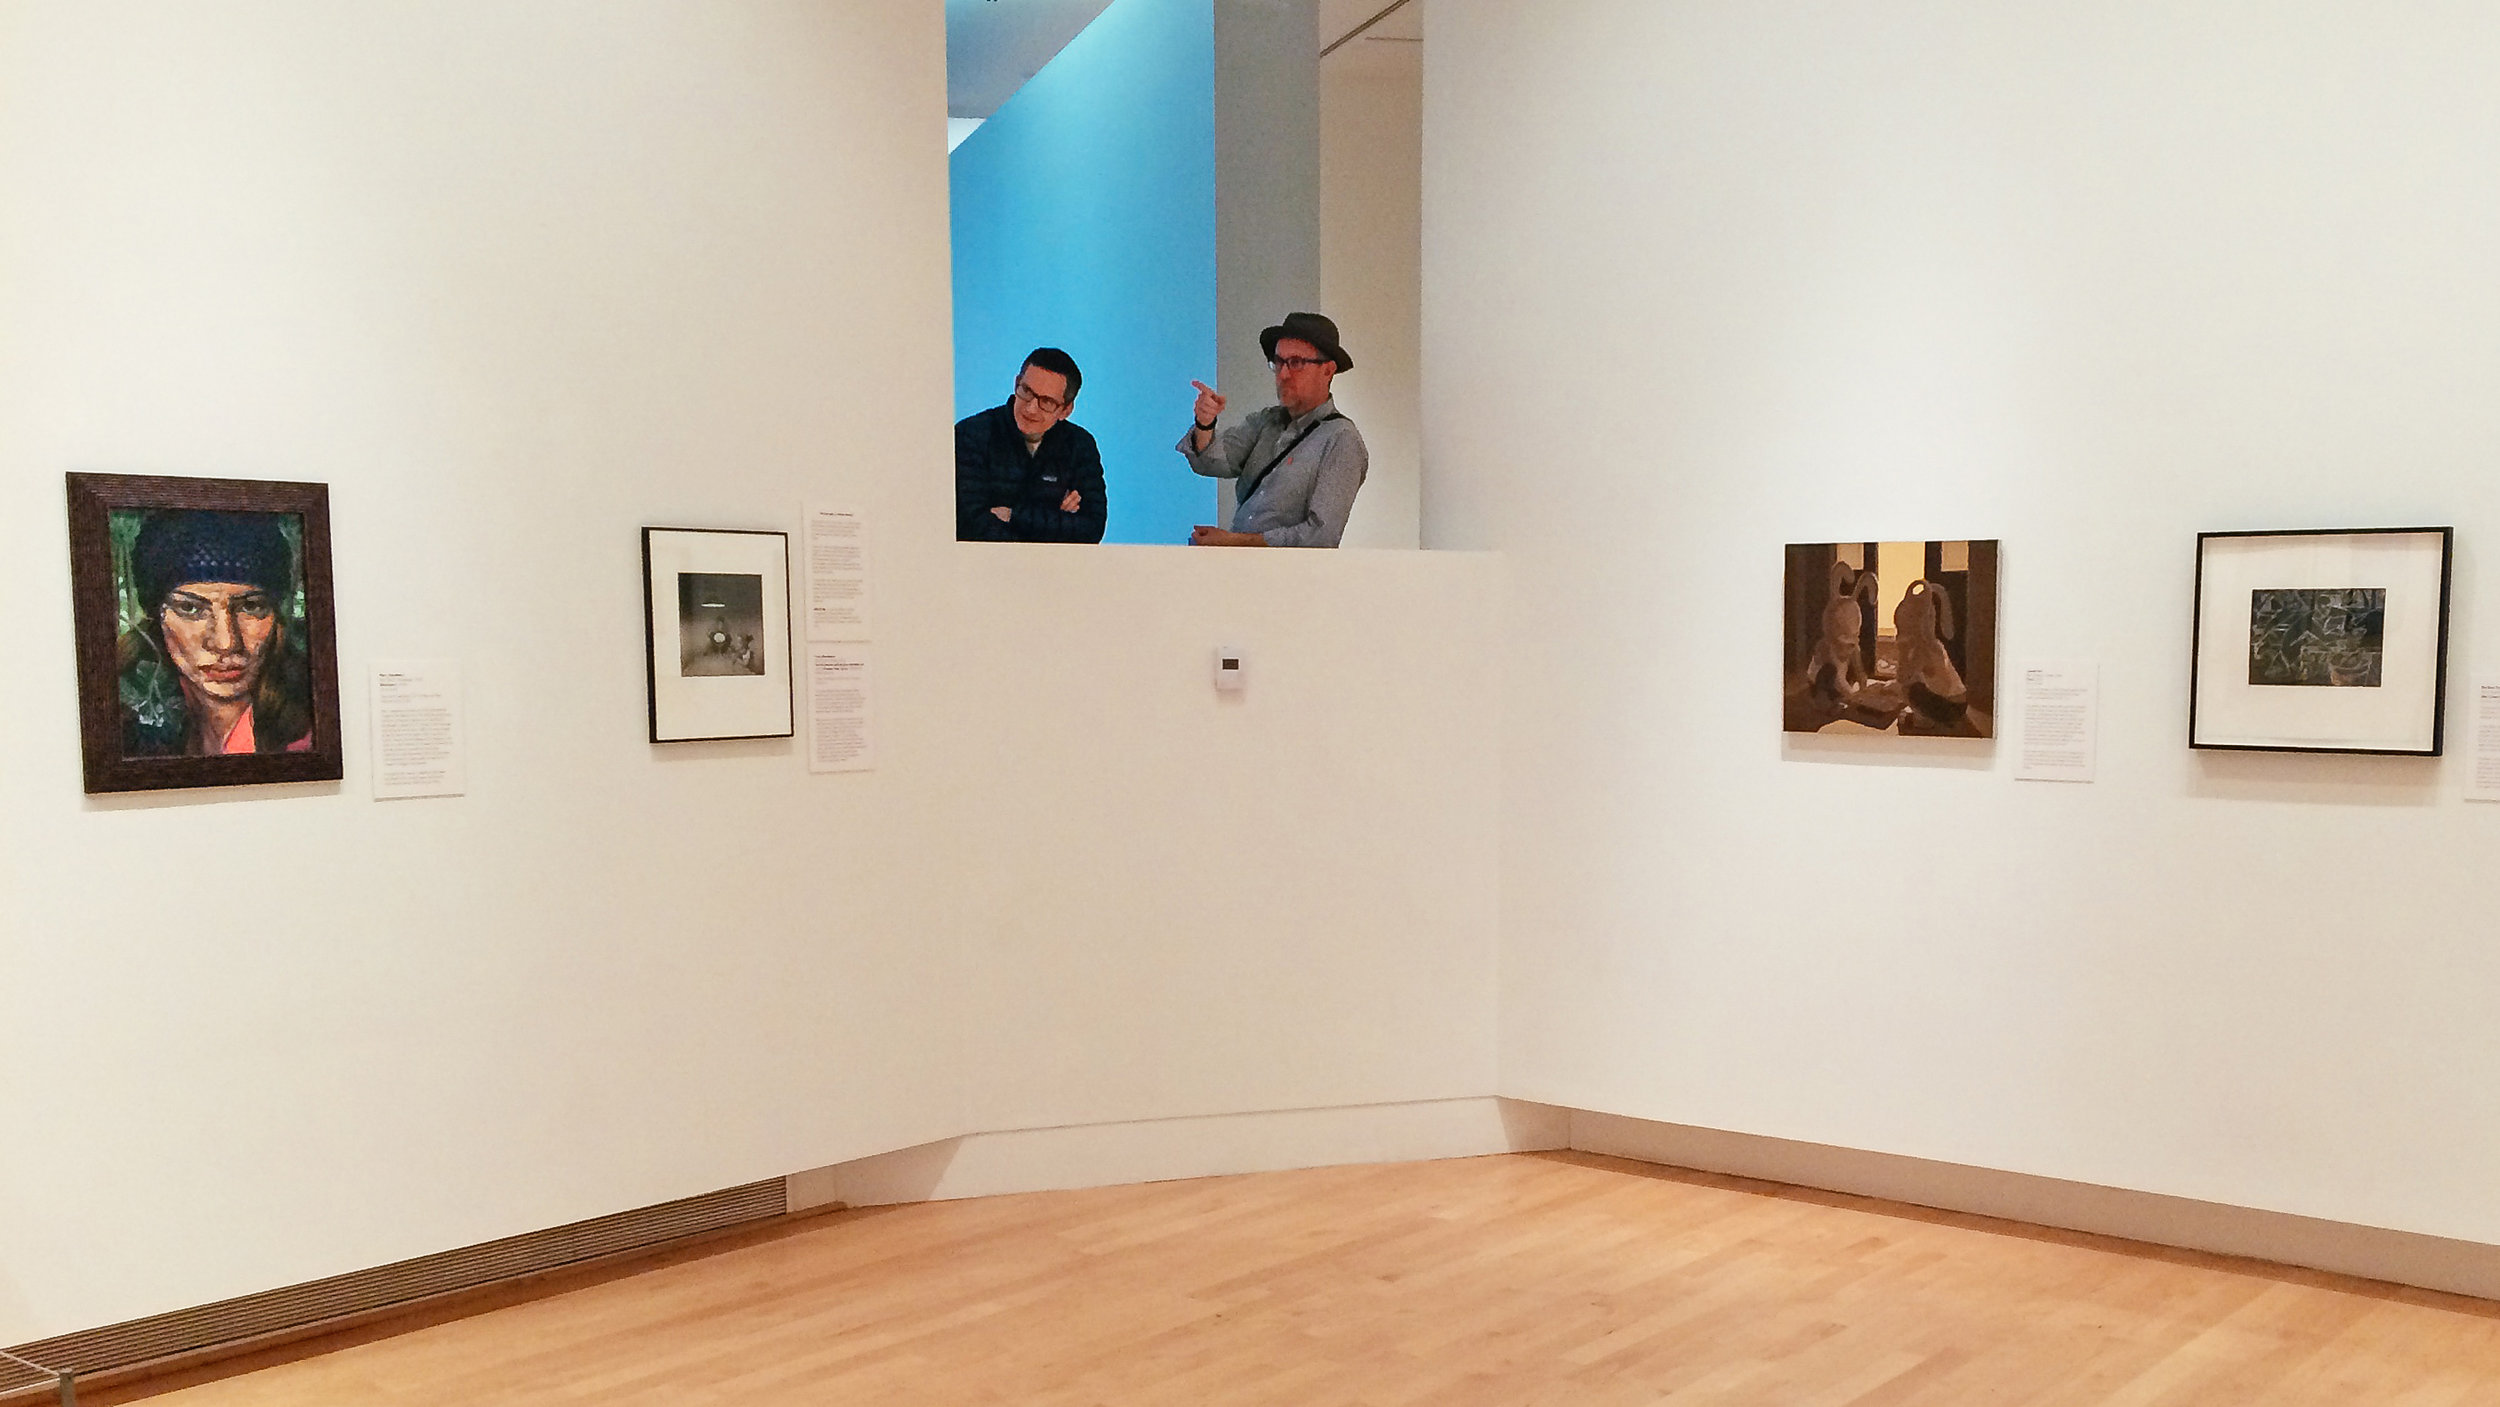 Matt and I admiring and imitating art in TAM's Russell Gallery (photo by Elaine)